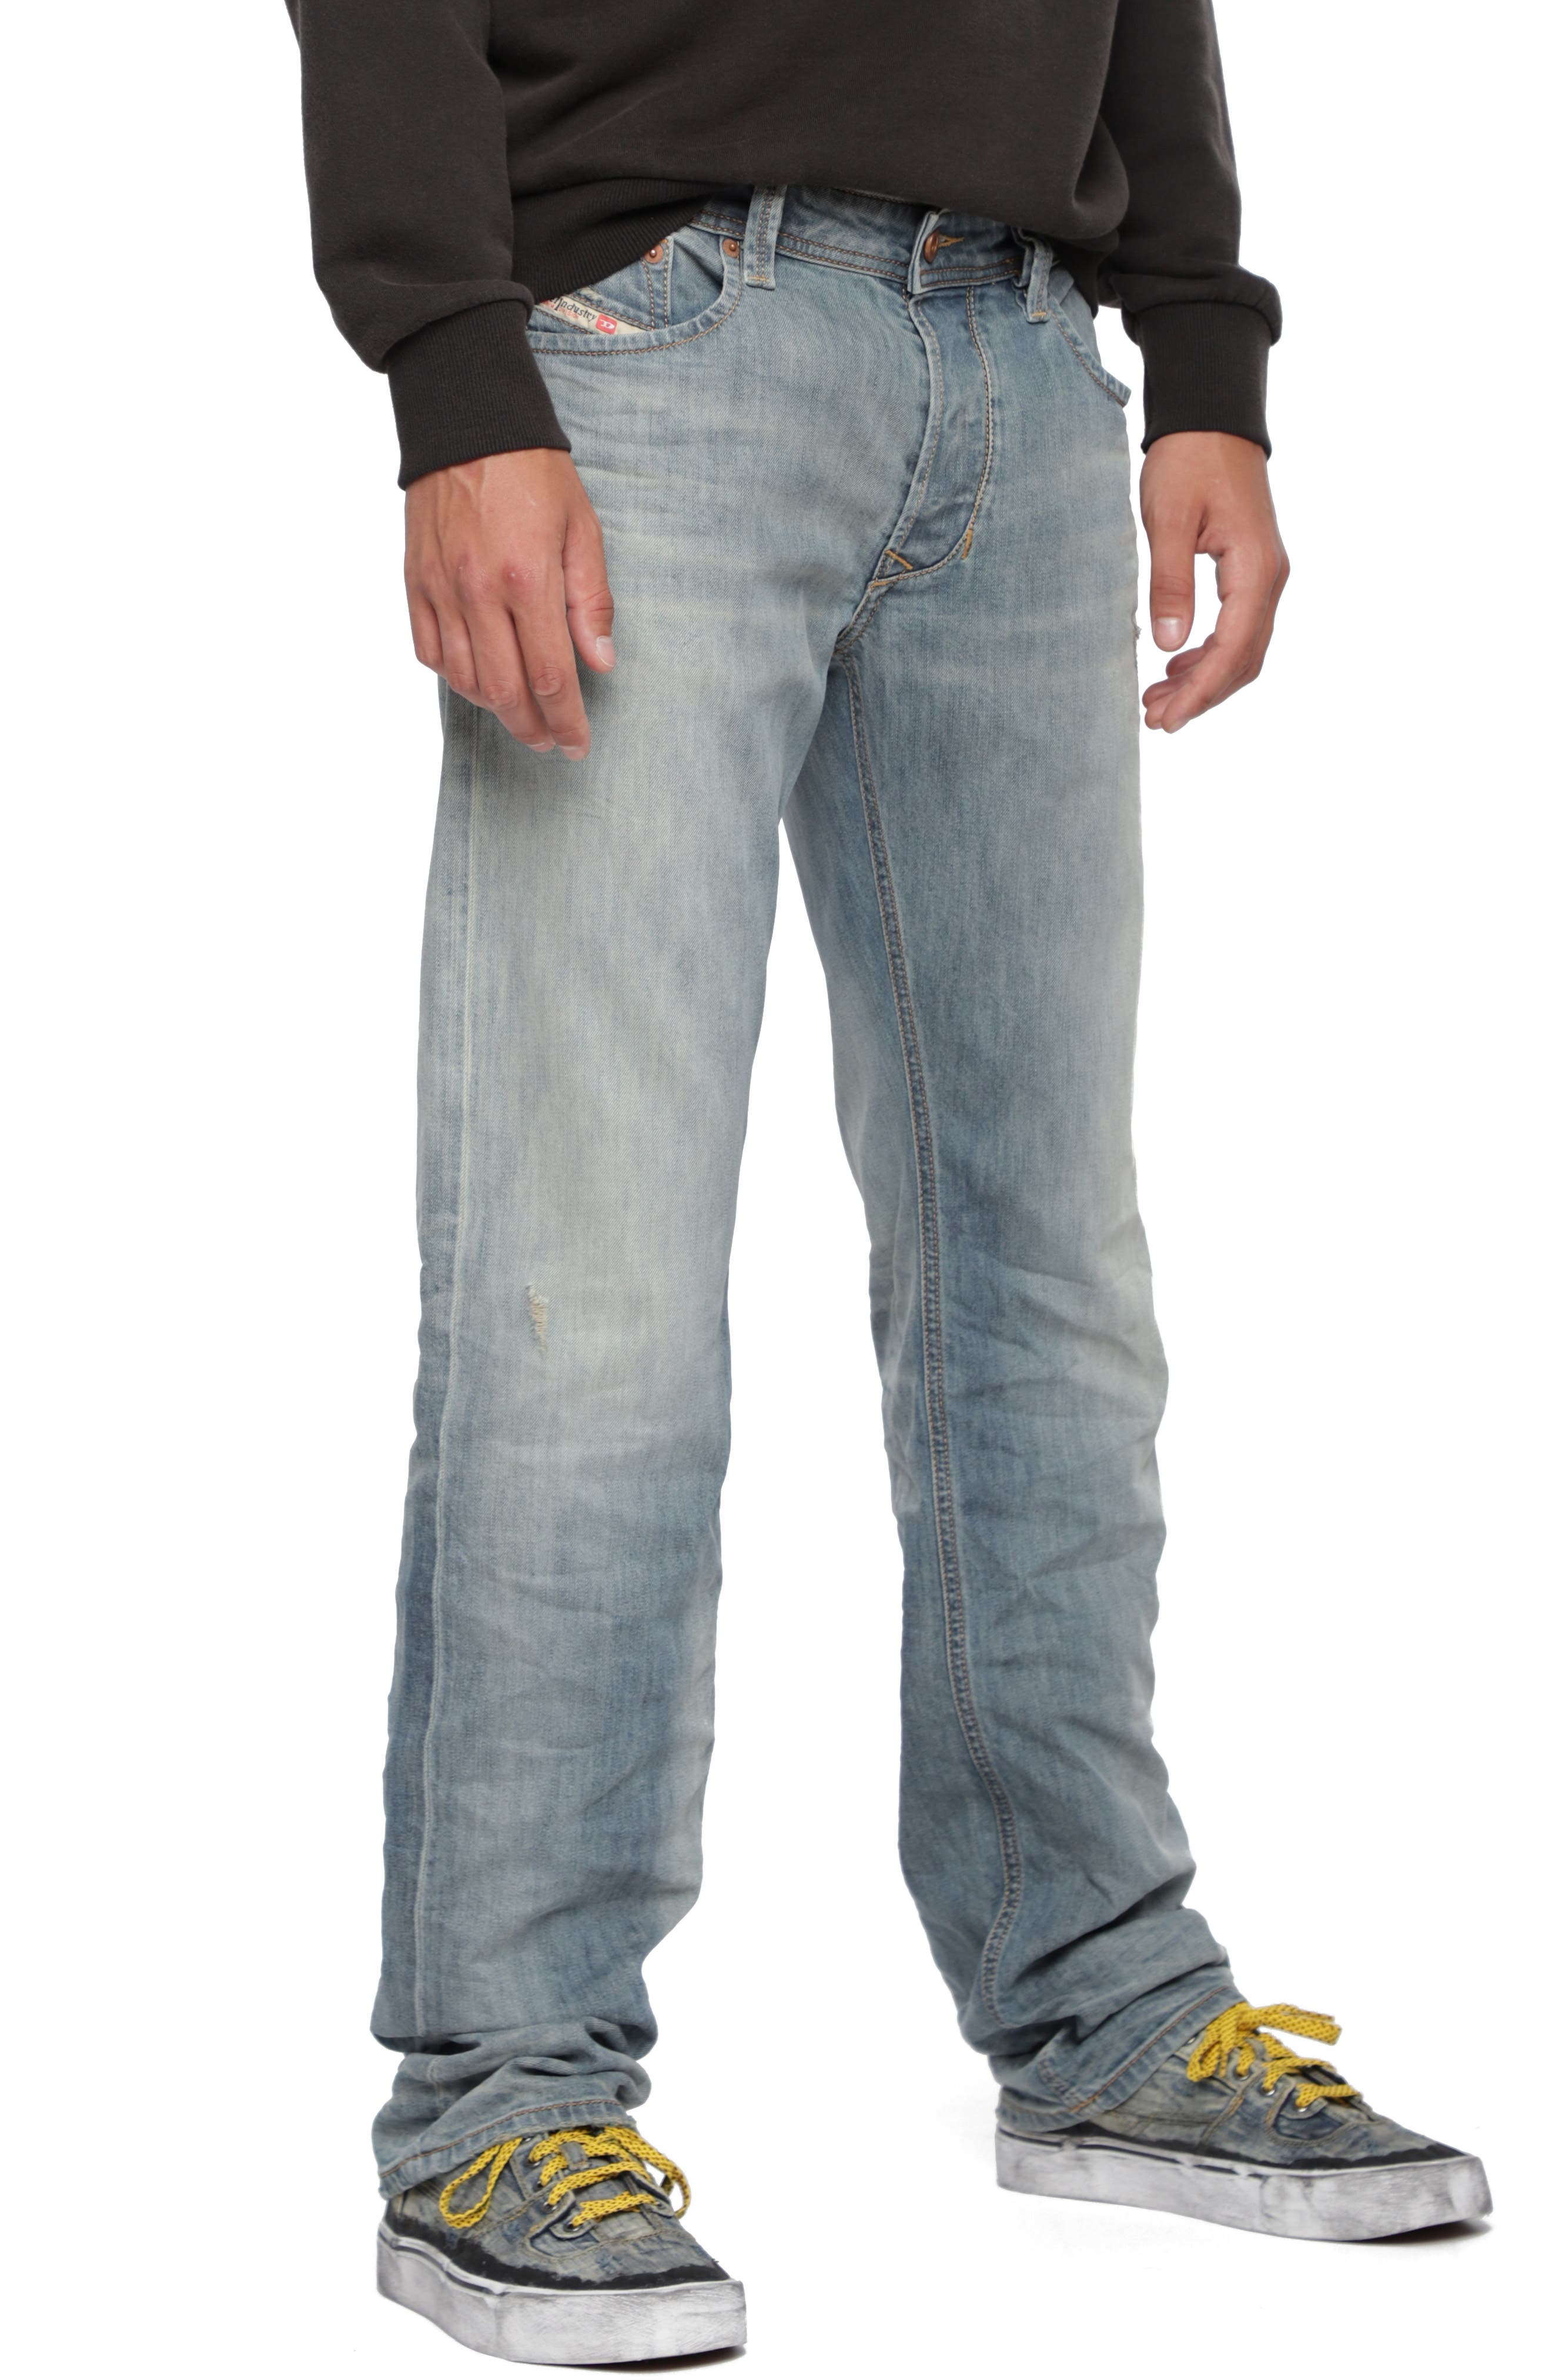 Larkee Relaxed Fit Jeans,                             Main thumbnail 1, color,                             084UK